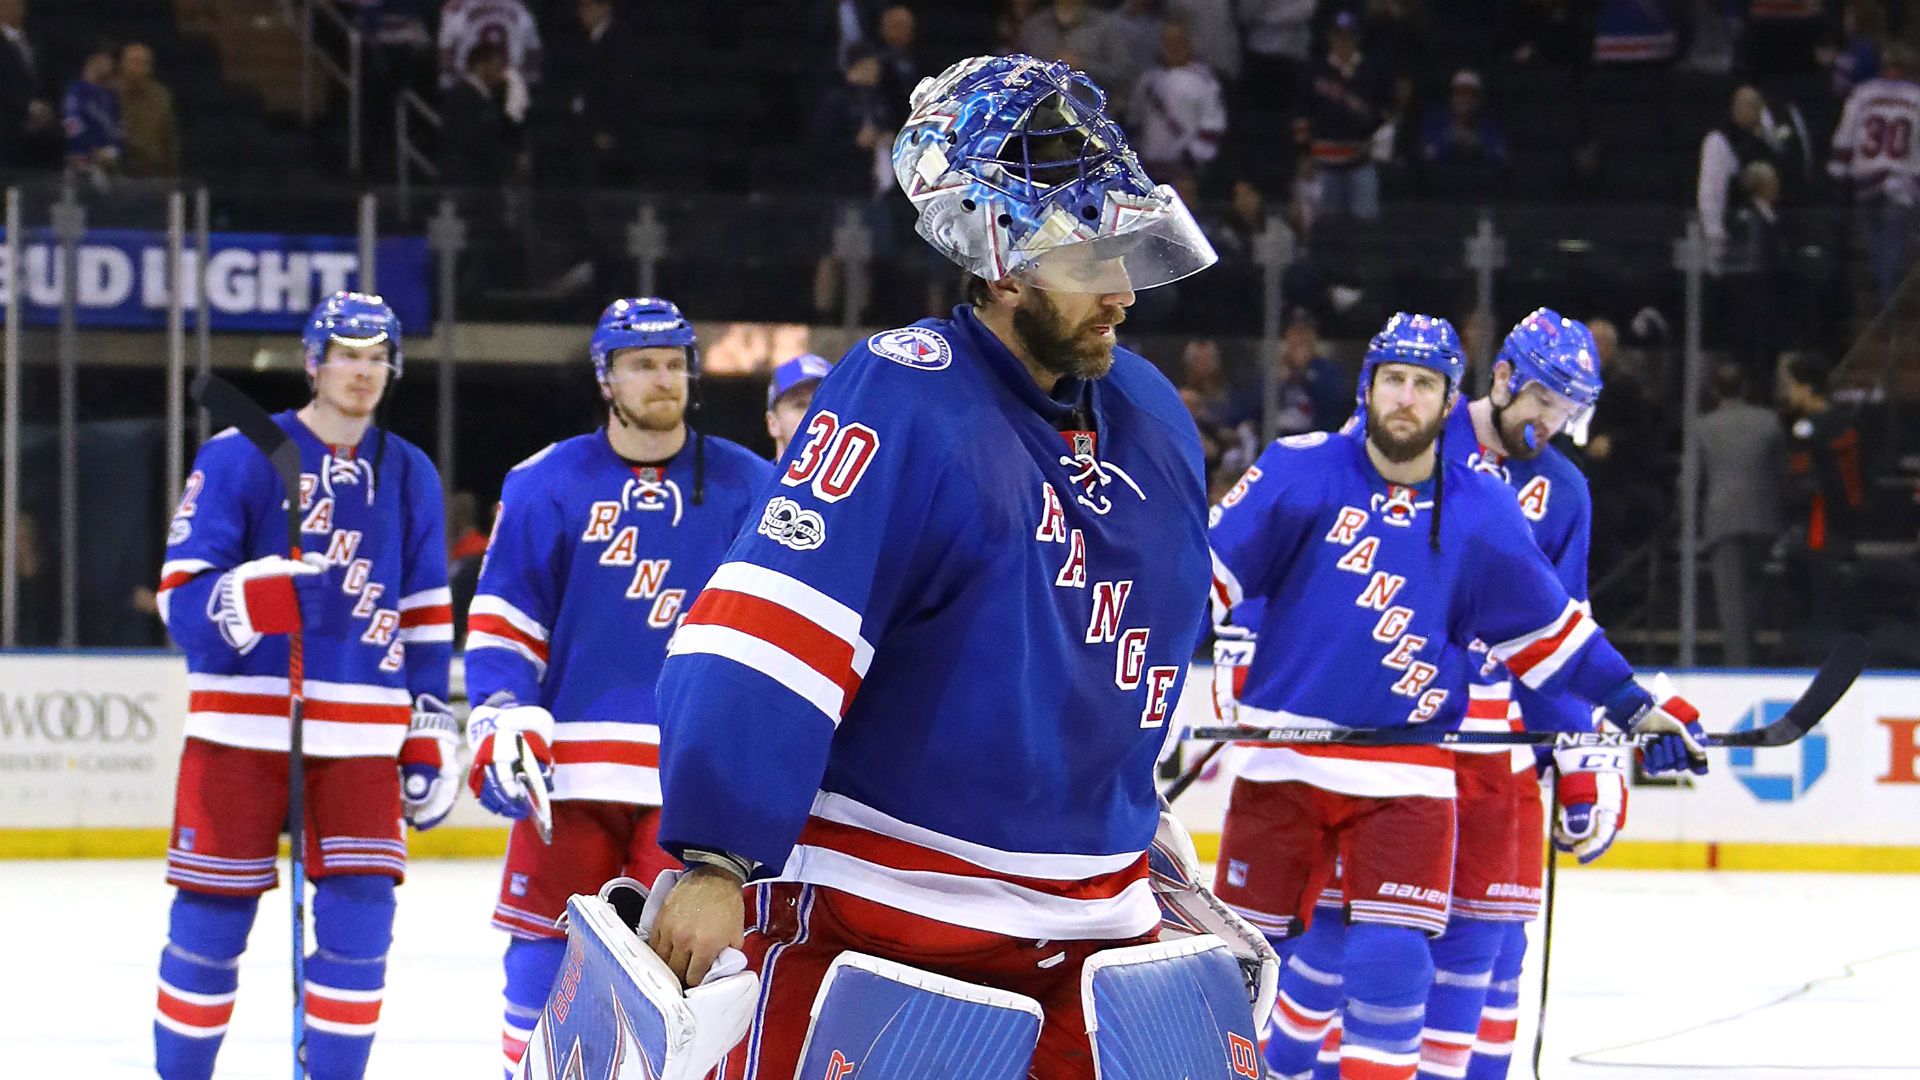 Rangers head into offseason after second-round playoff loss